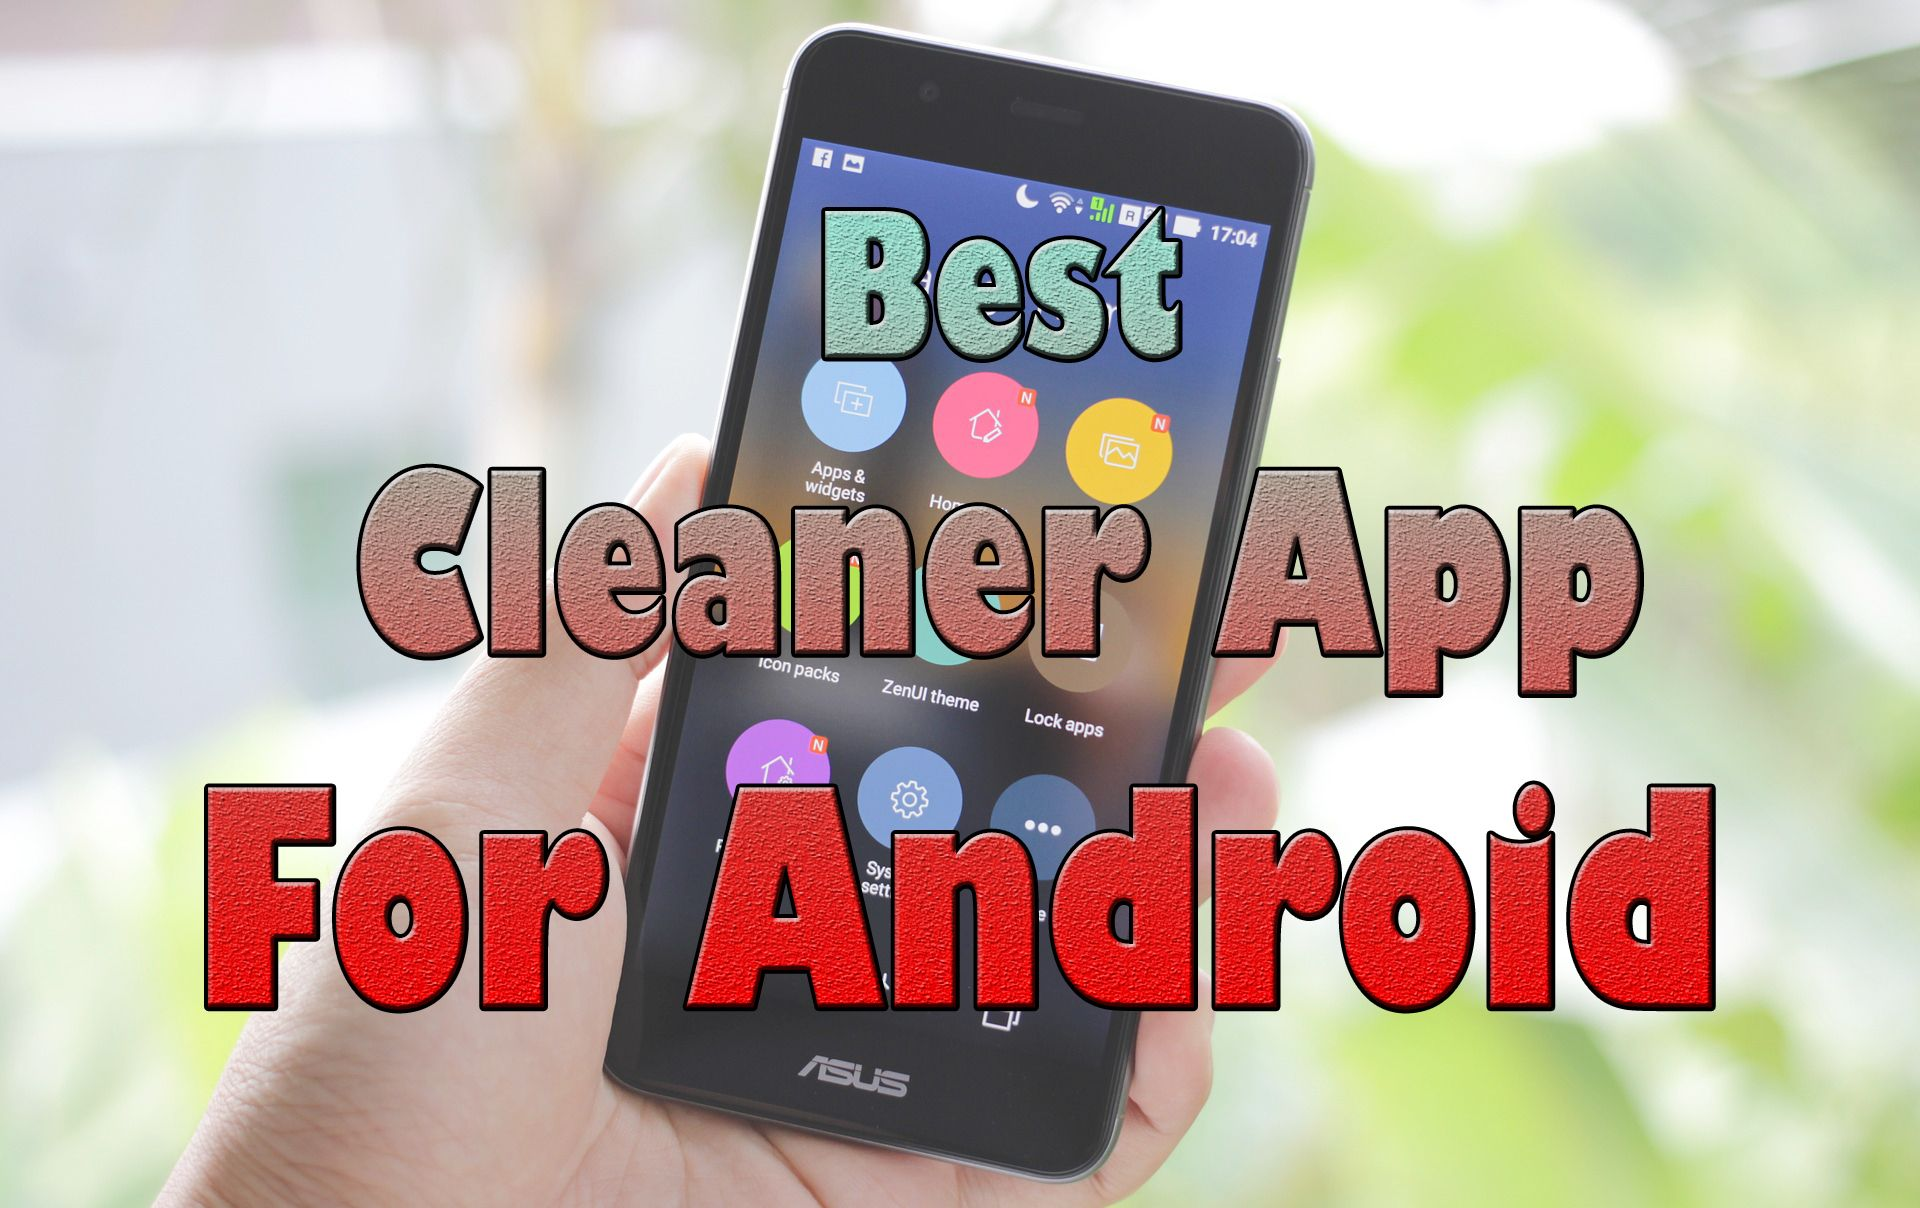 10 Best Cleaner App For Android 2019 App, Best cleaner